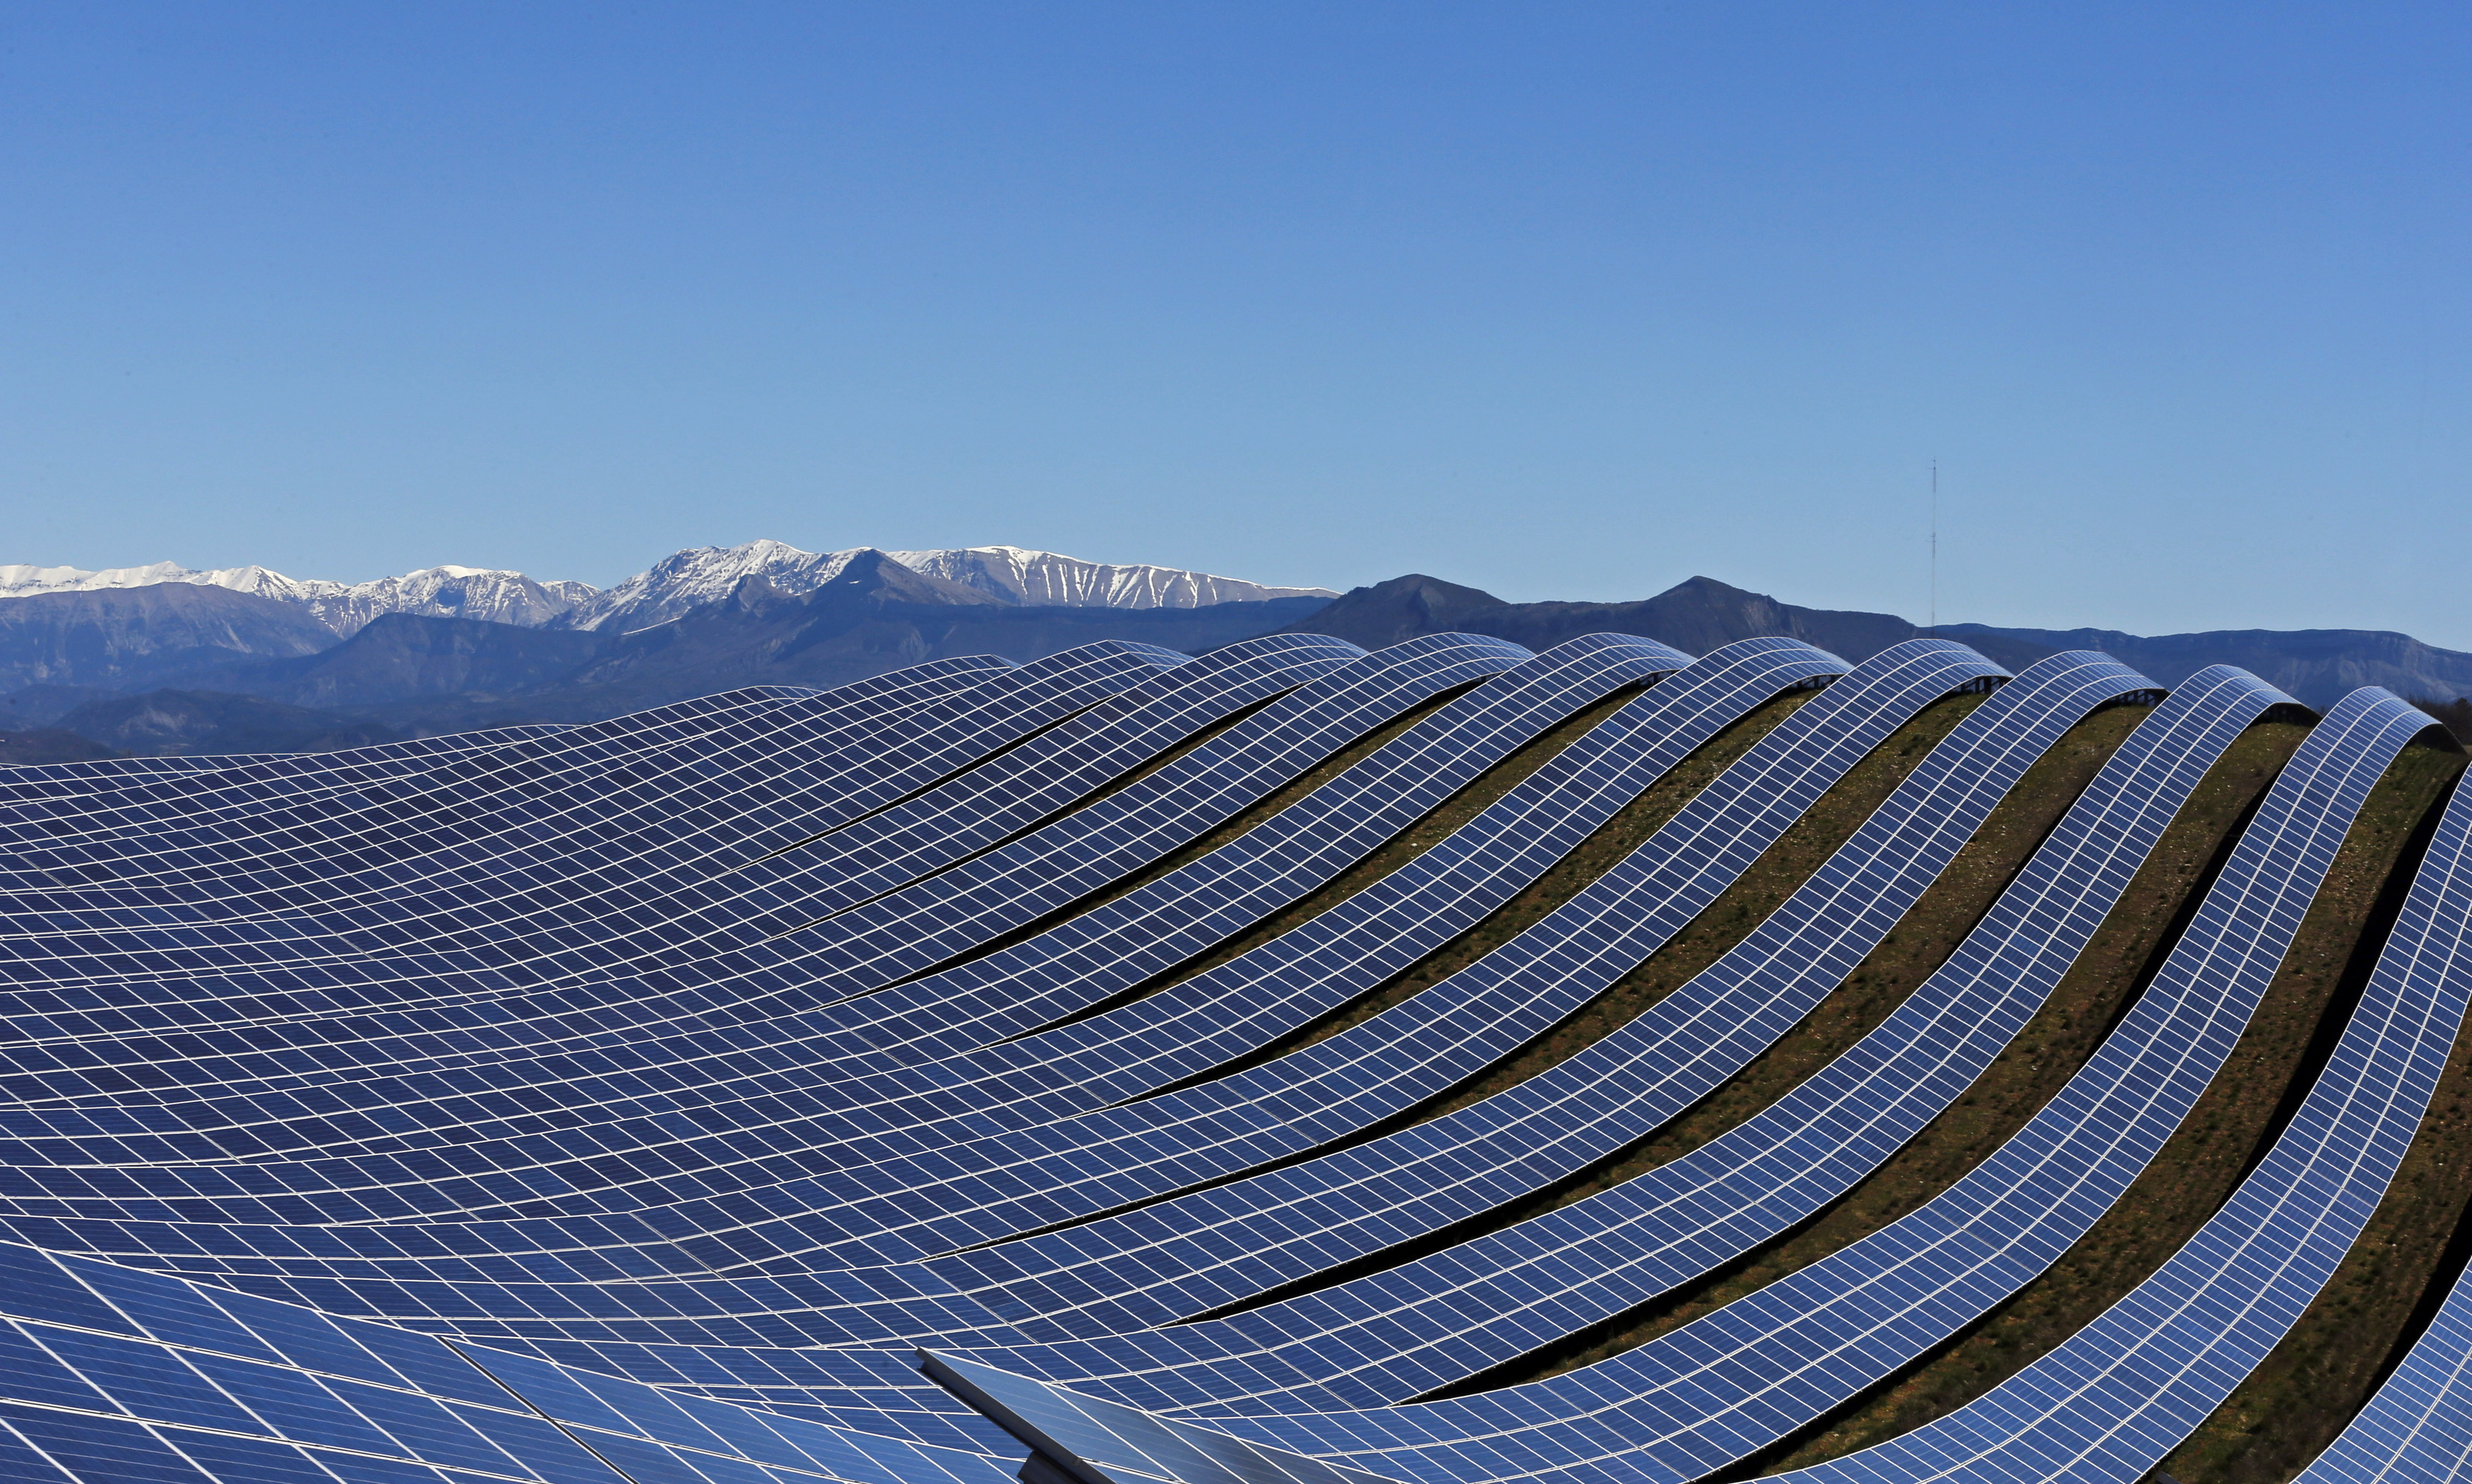 A photovoltaic park in Les Mees, southern France.